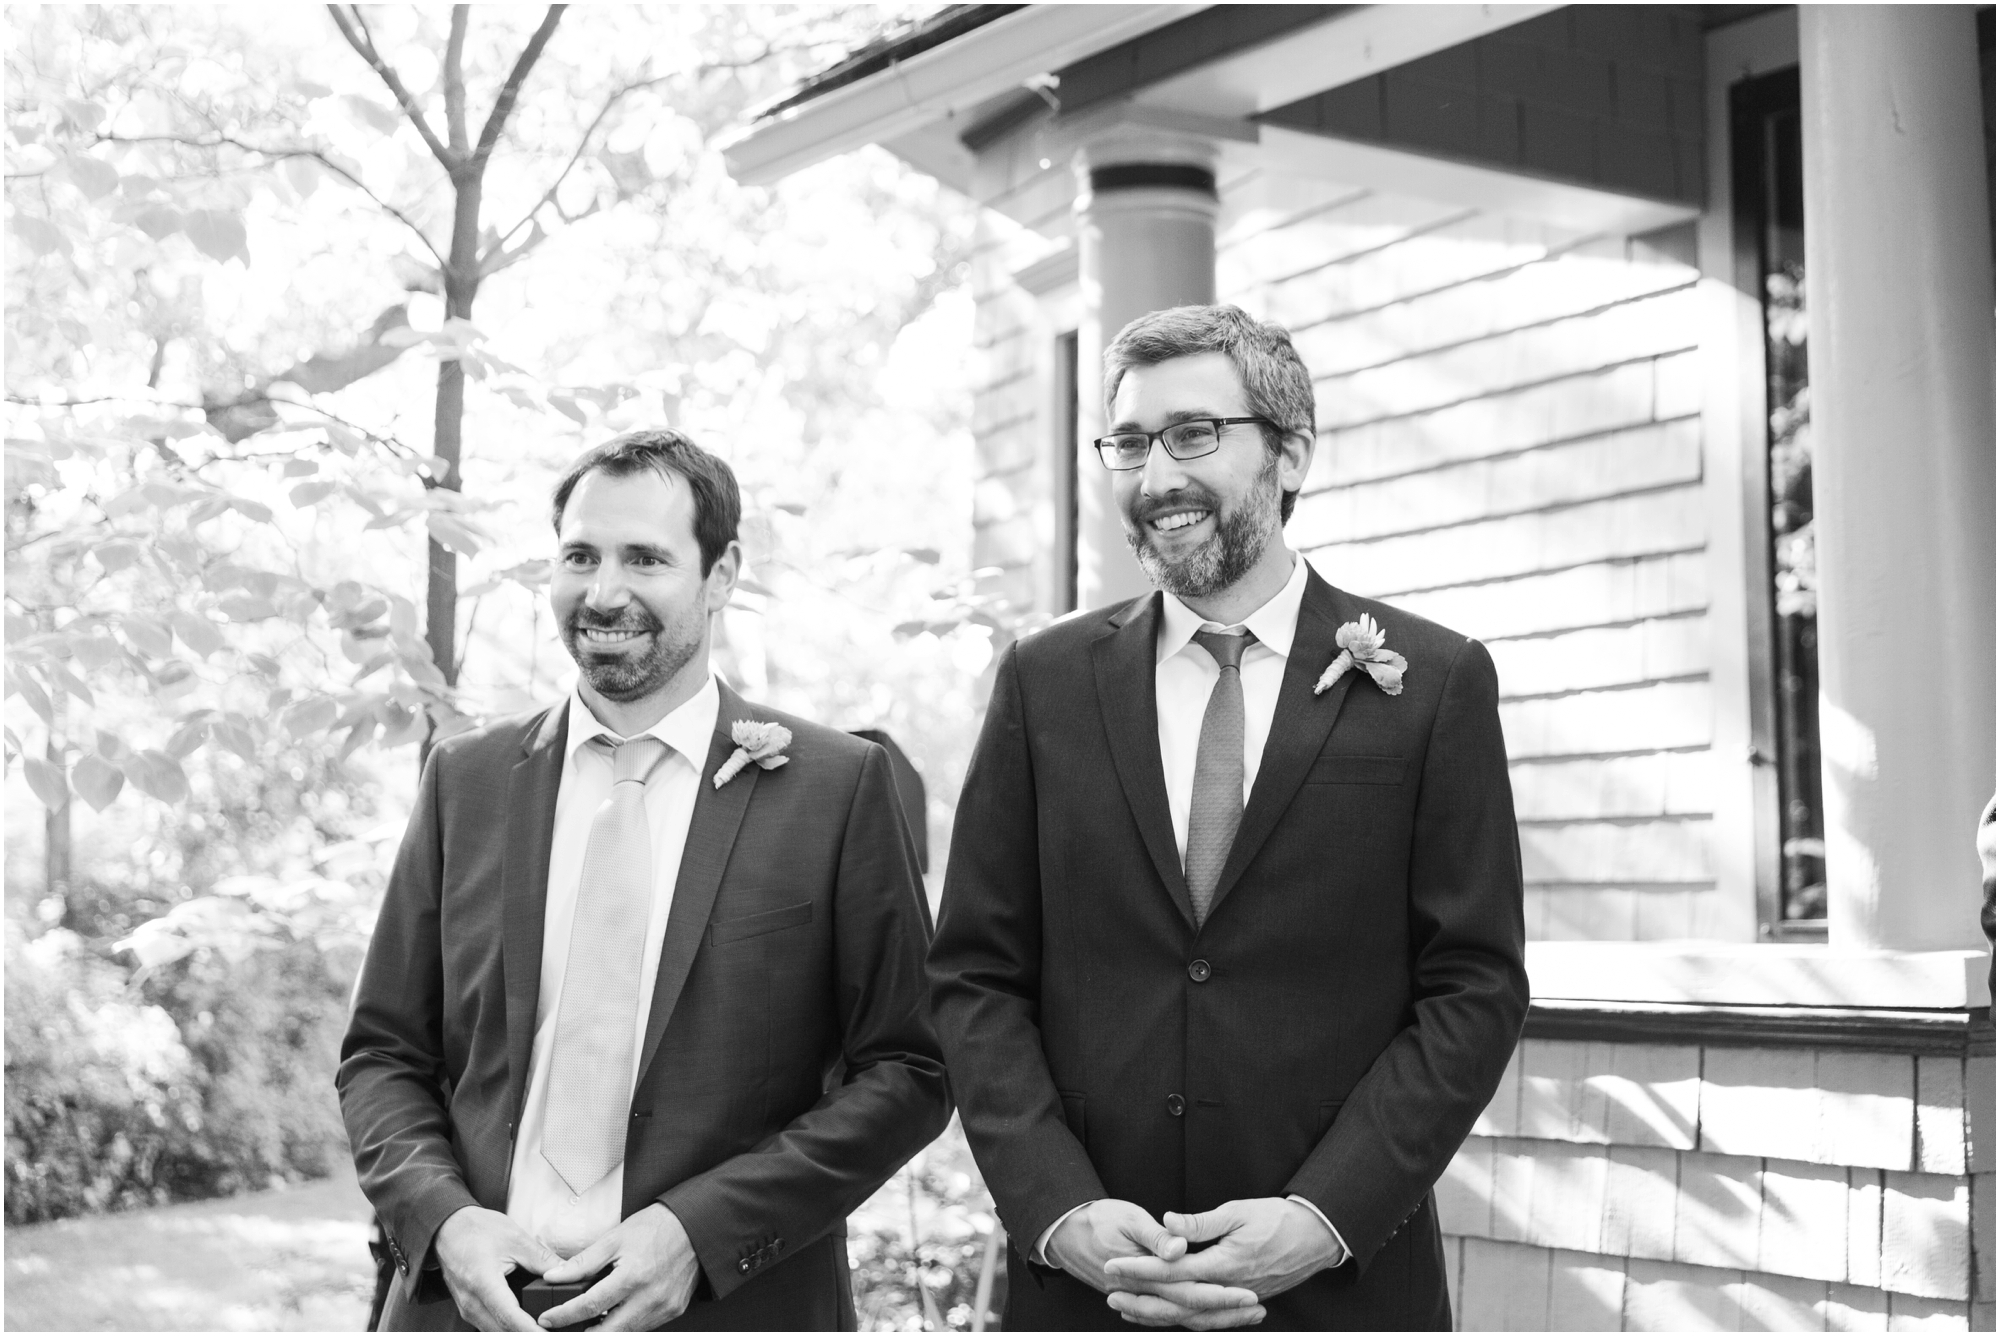 Garden wedding in Ellensburg, WA. Photos by Briana Calderon Photography based in the greater Seattle-Tacoma Area._1342.jpg